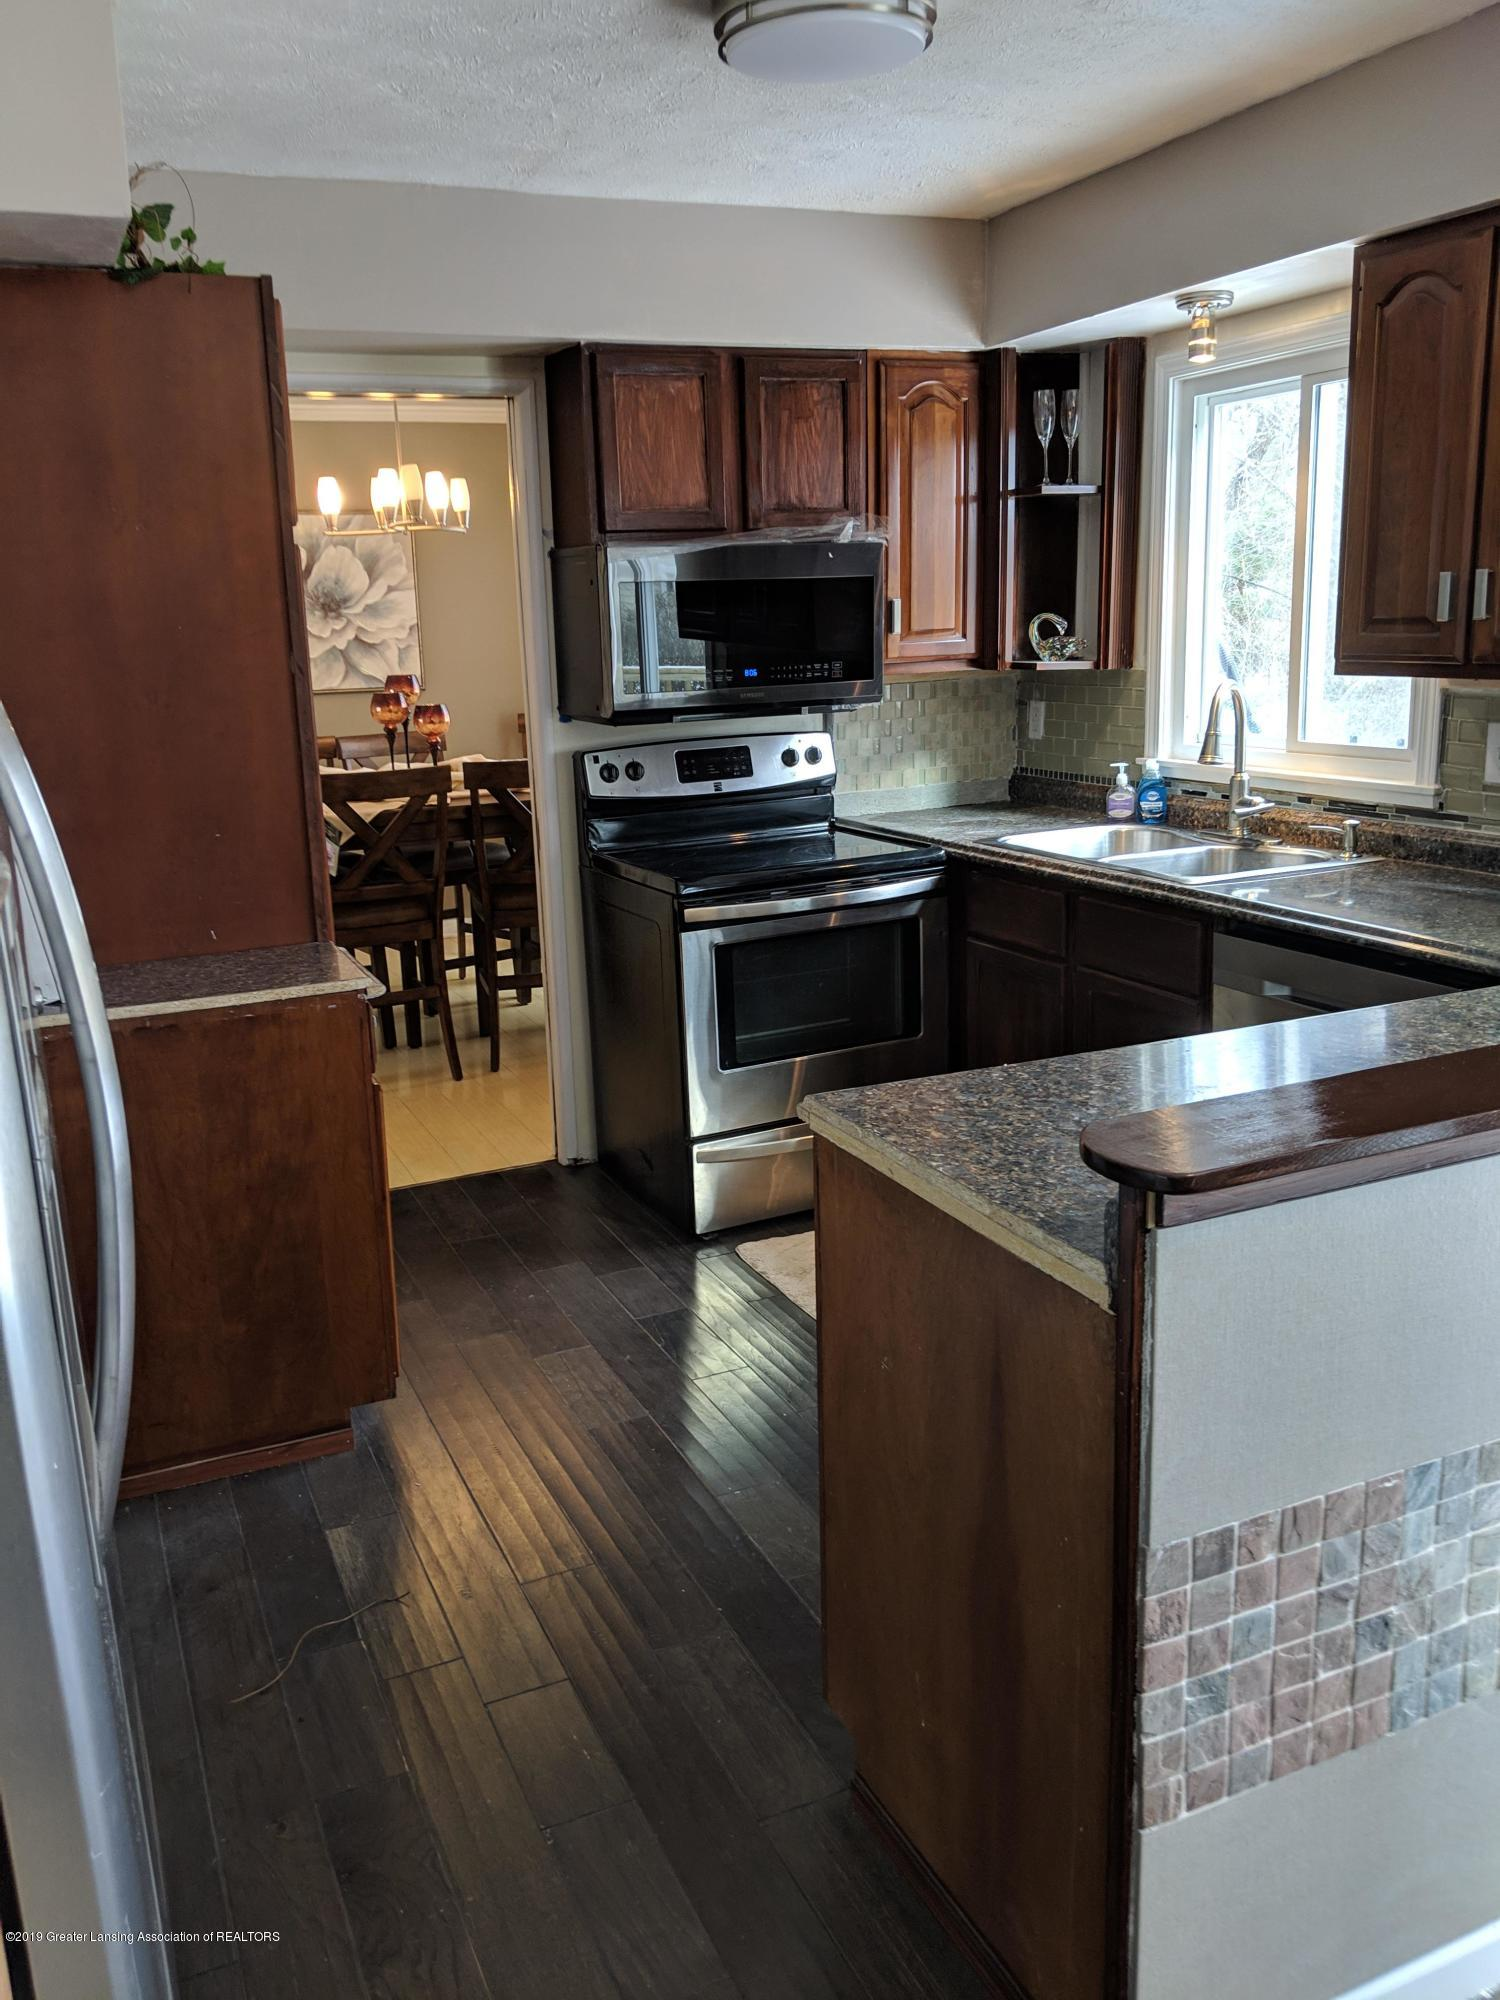 1002 Touraine Ave - Kitchen Updated - 2